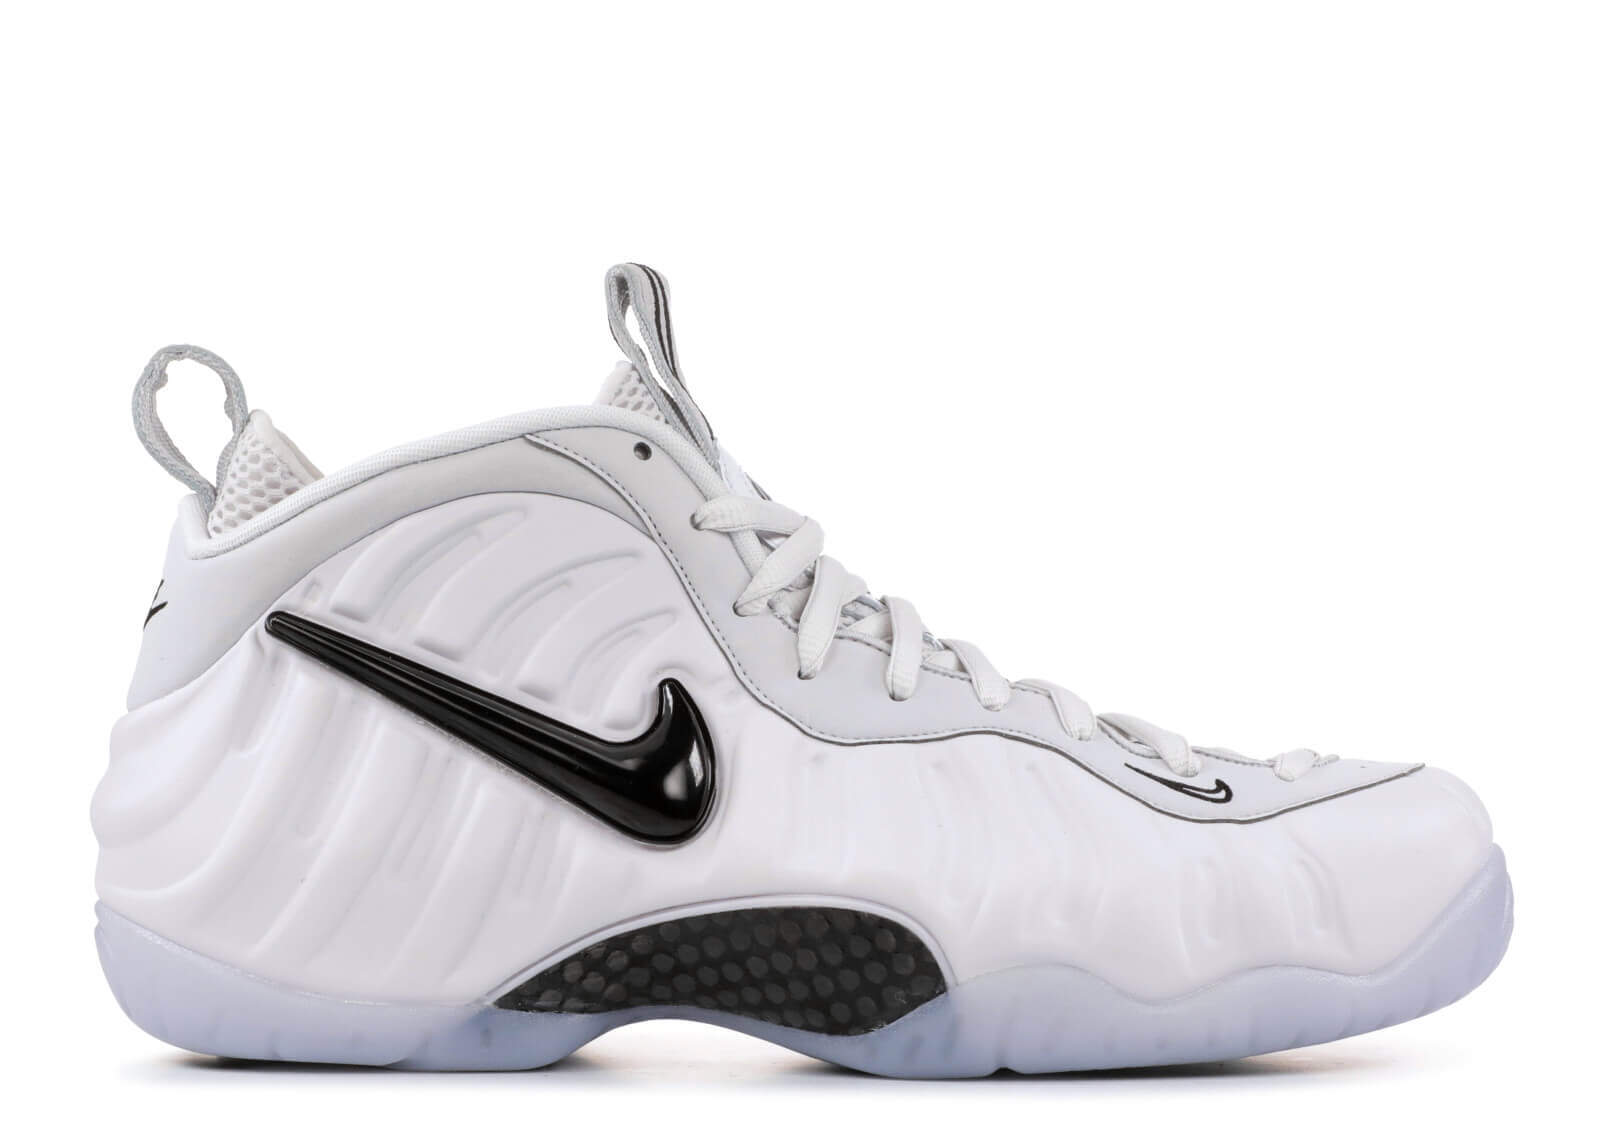 """innovative design dce86 5c46f Nike Air Foamposite Pro AS QS """"Swoosh Pack"""" 